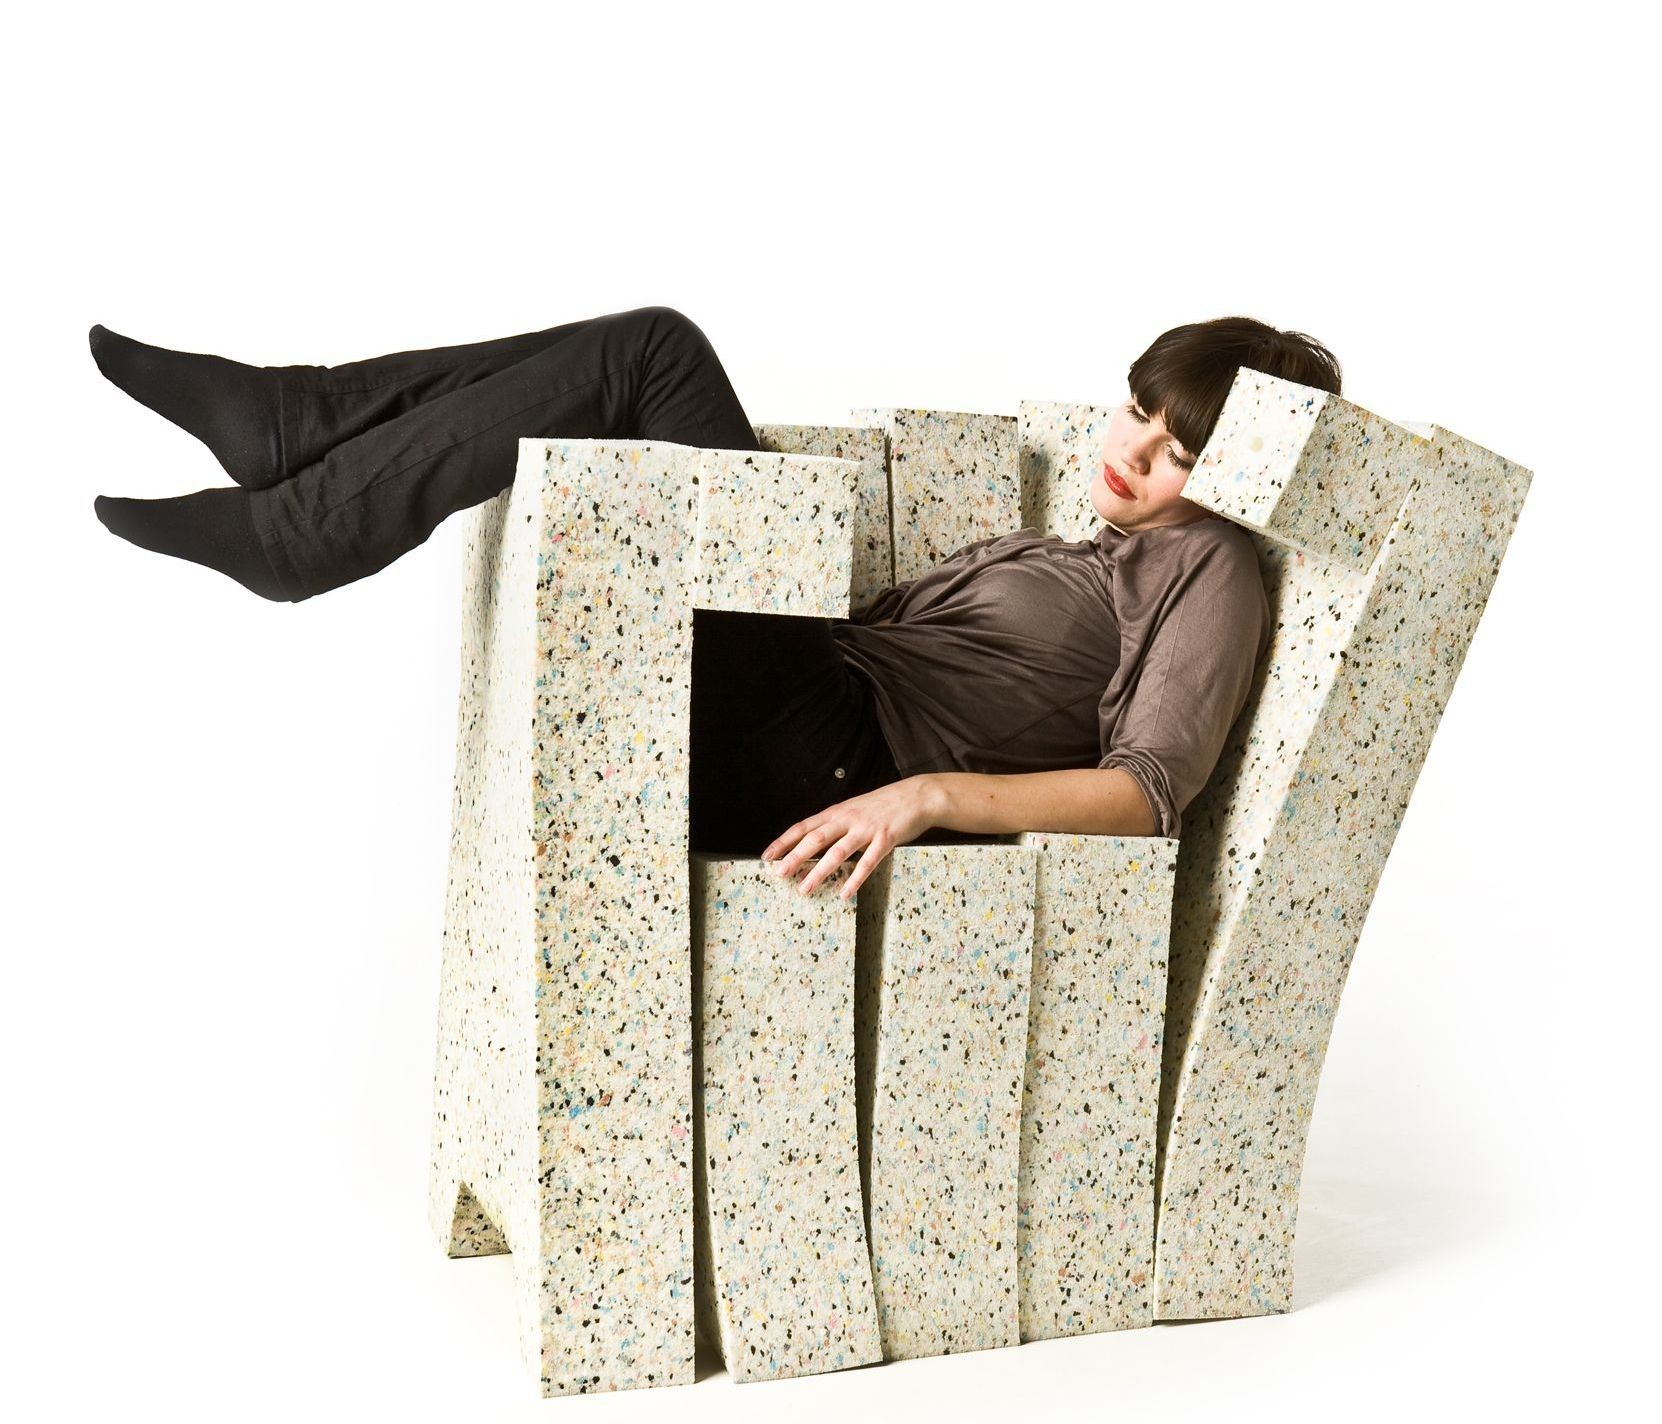 Foam soft pad chair by Stephan Schulz